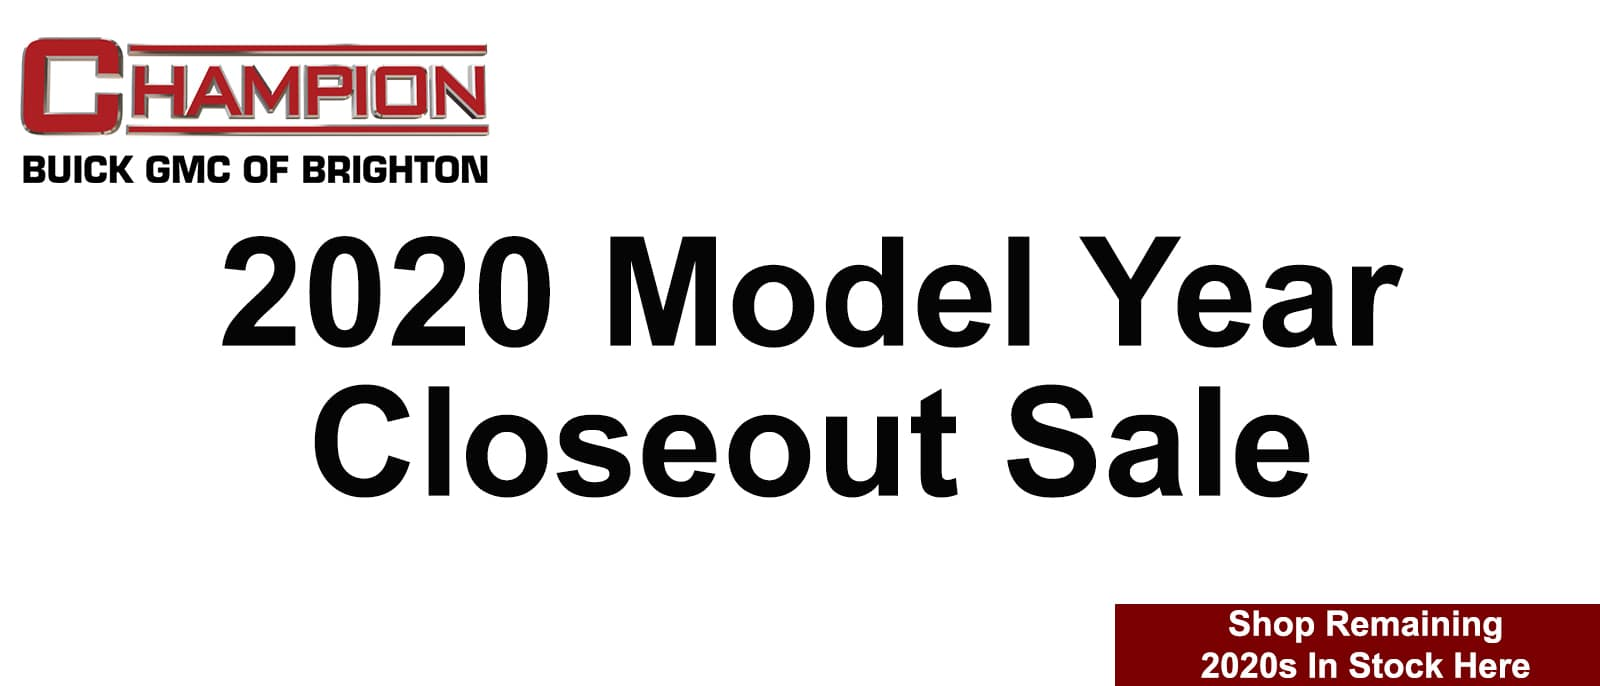 2020 Model Year Closeout